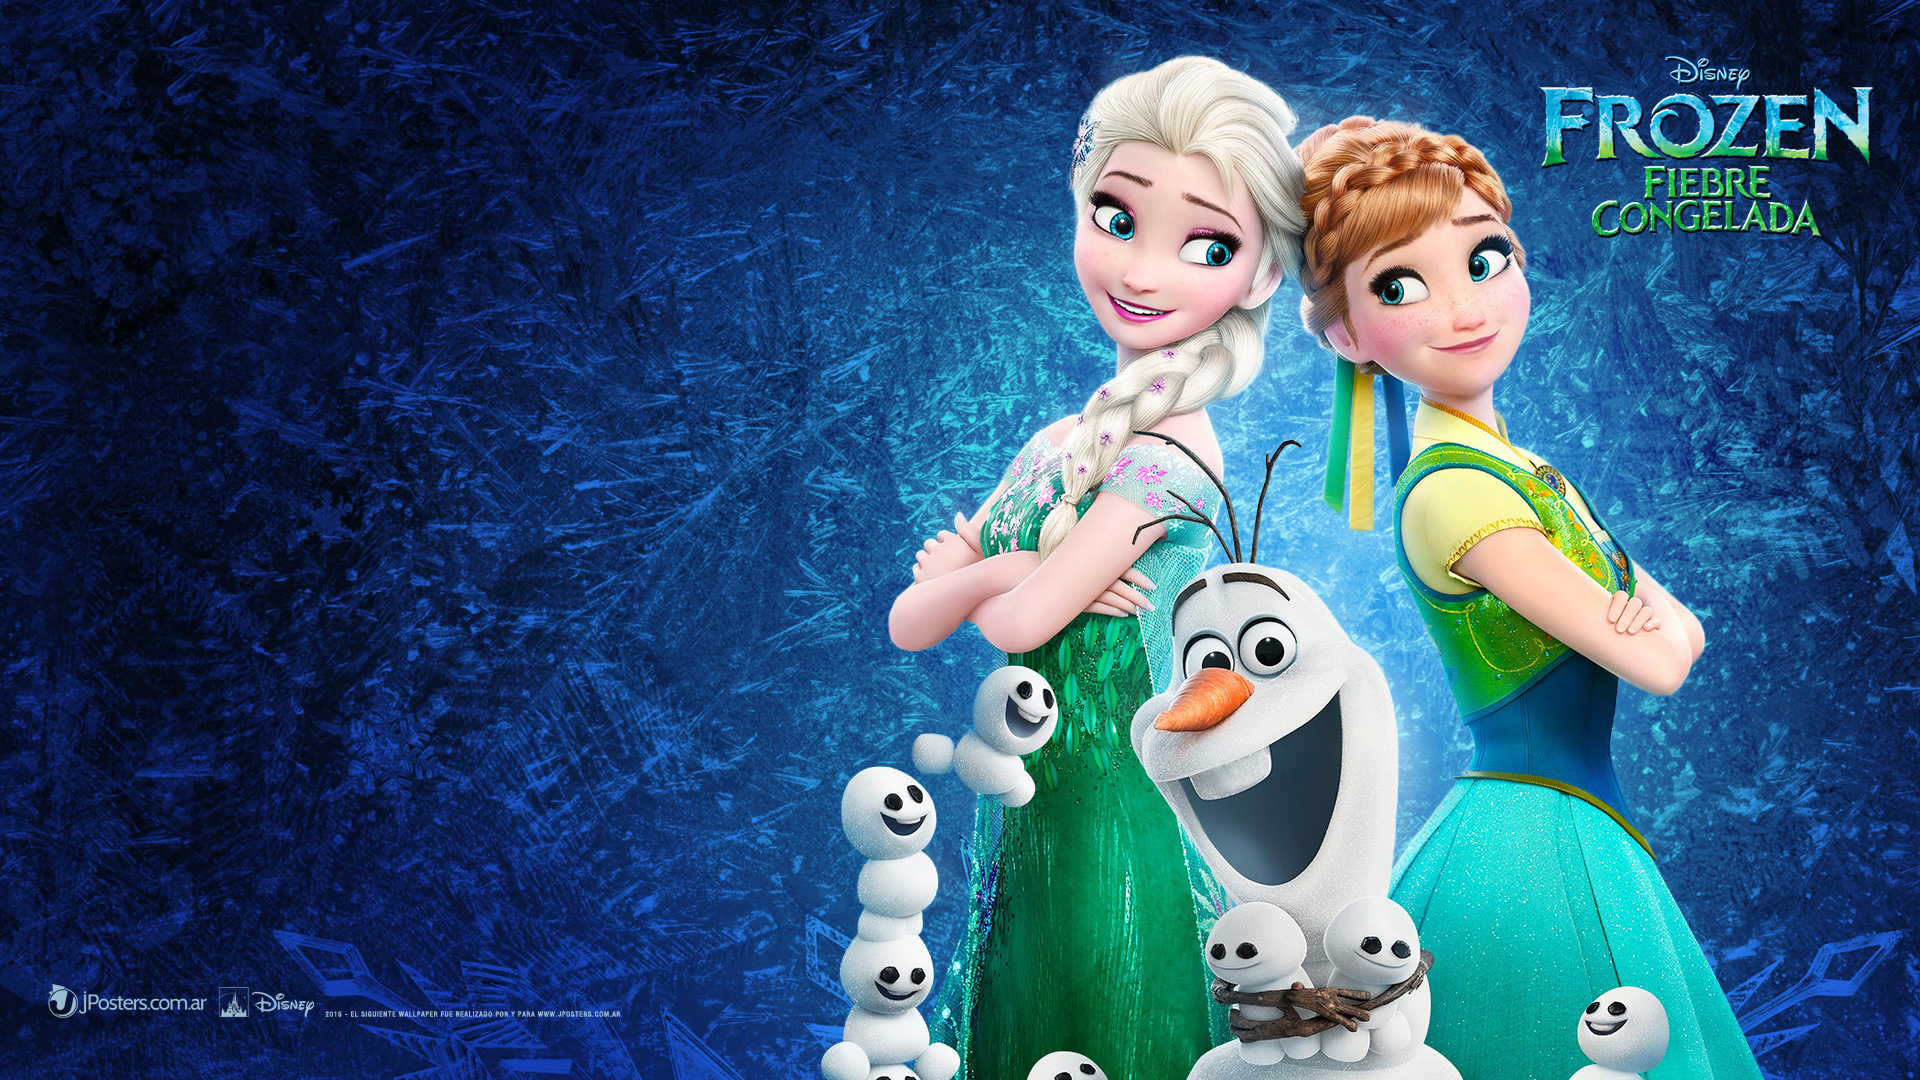 Frozen fever wallpaper elsa and anna wallpaper 38273104 - Frozen cartoon wallpaper ...